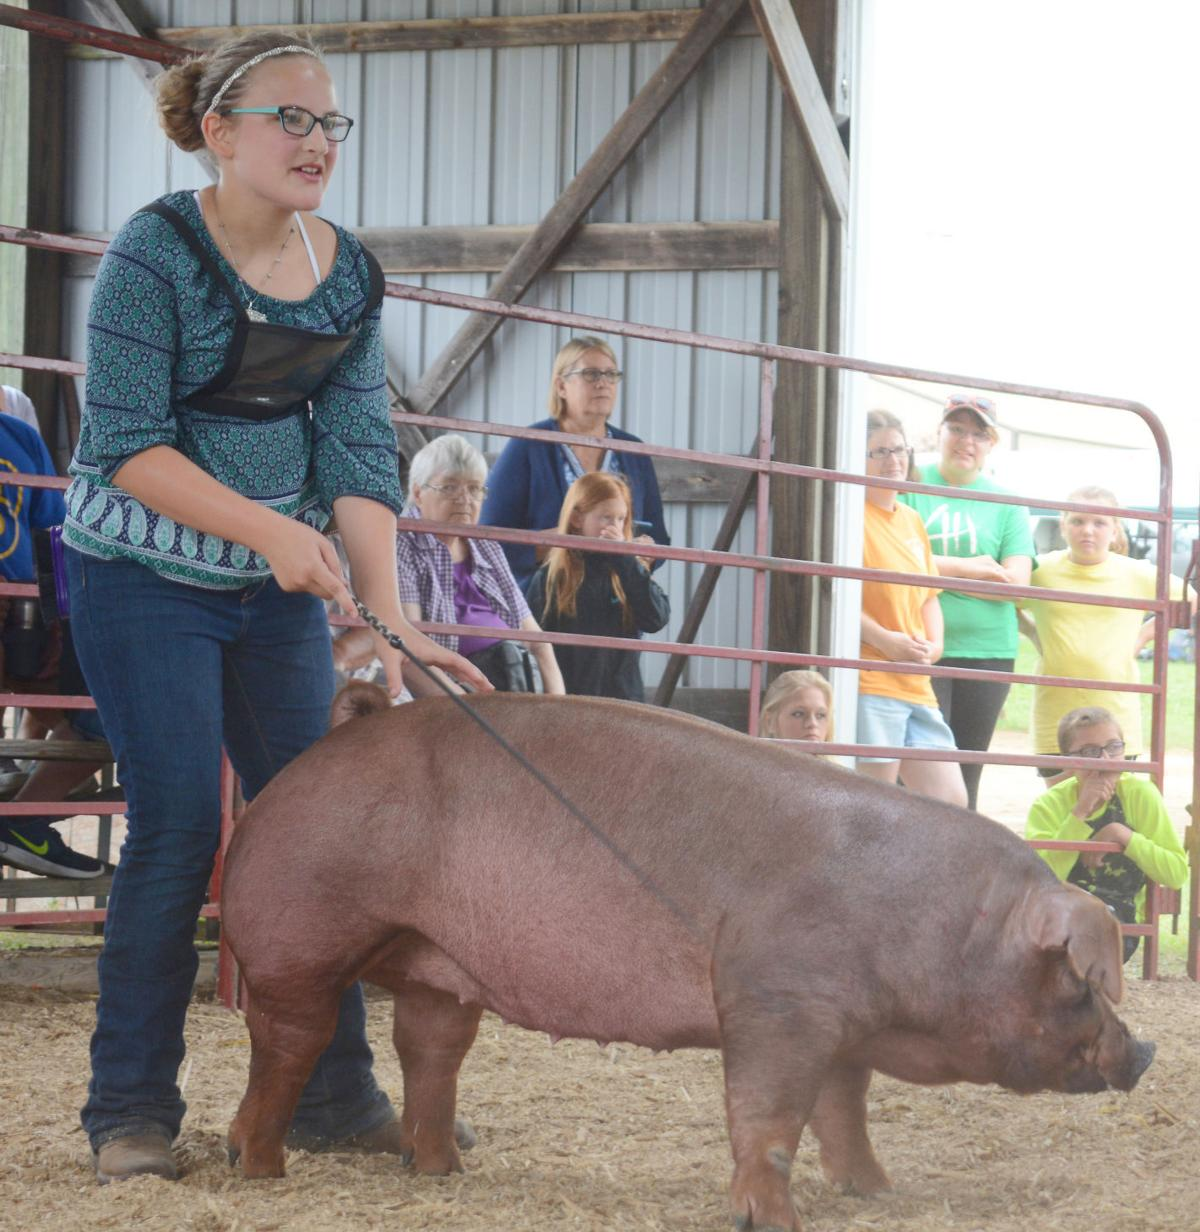 Youth work hard to bring animals to livestock shows